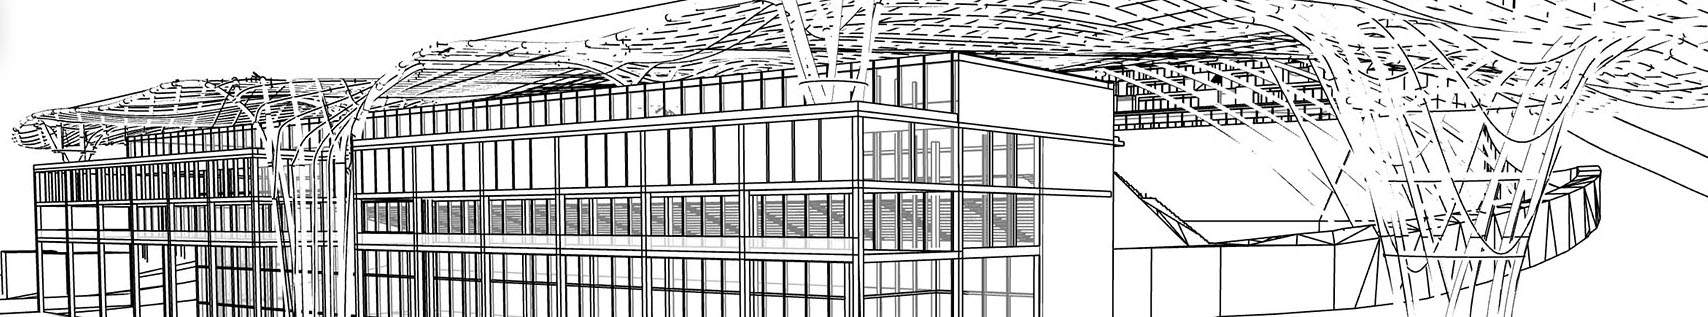 SketchUp For Architects and Designers